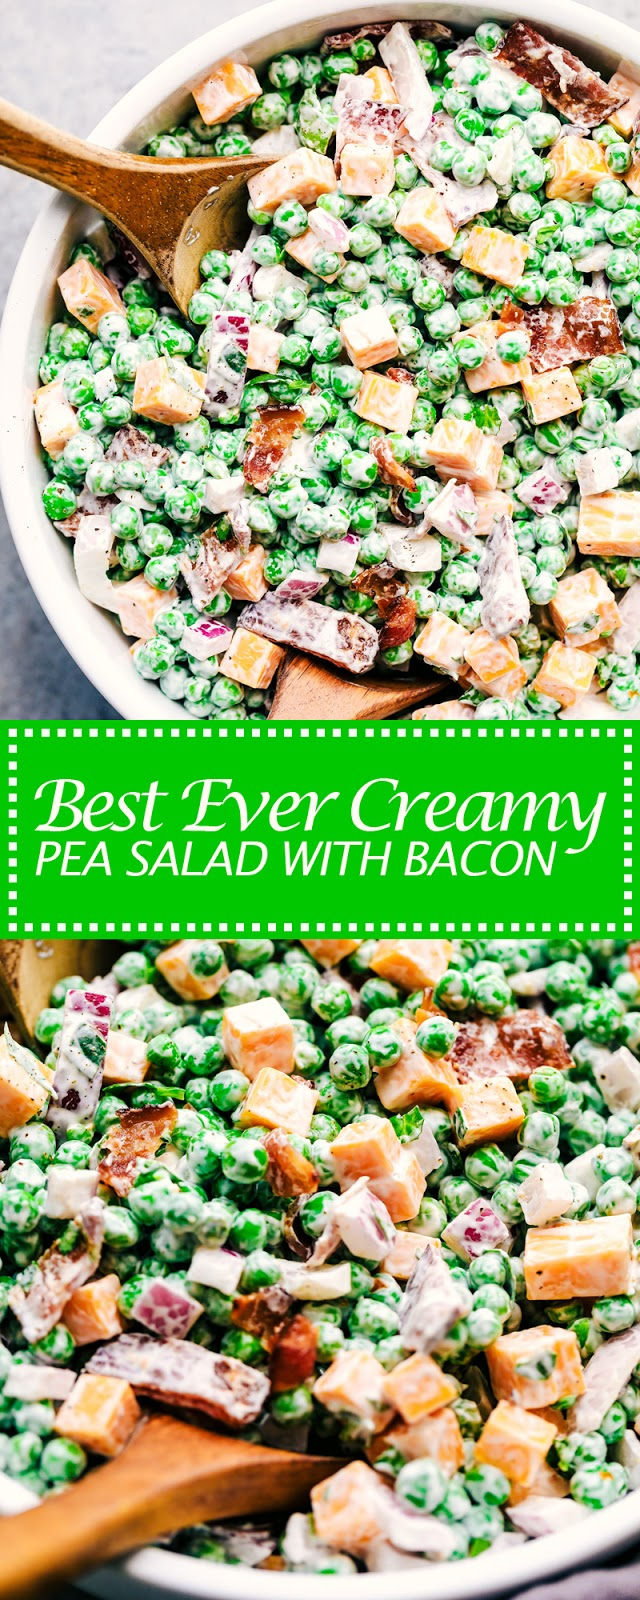 BEST EVER CREAMY PEA SALAD WITH BACON